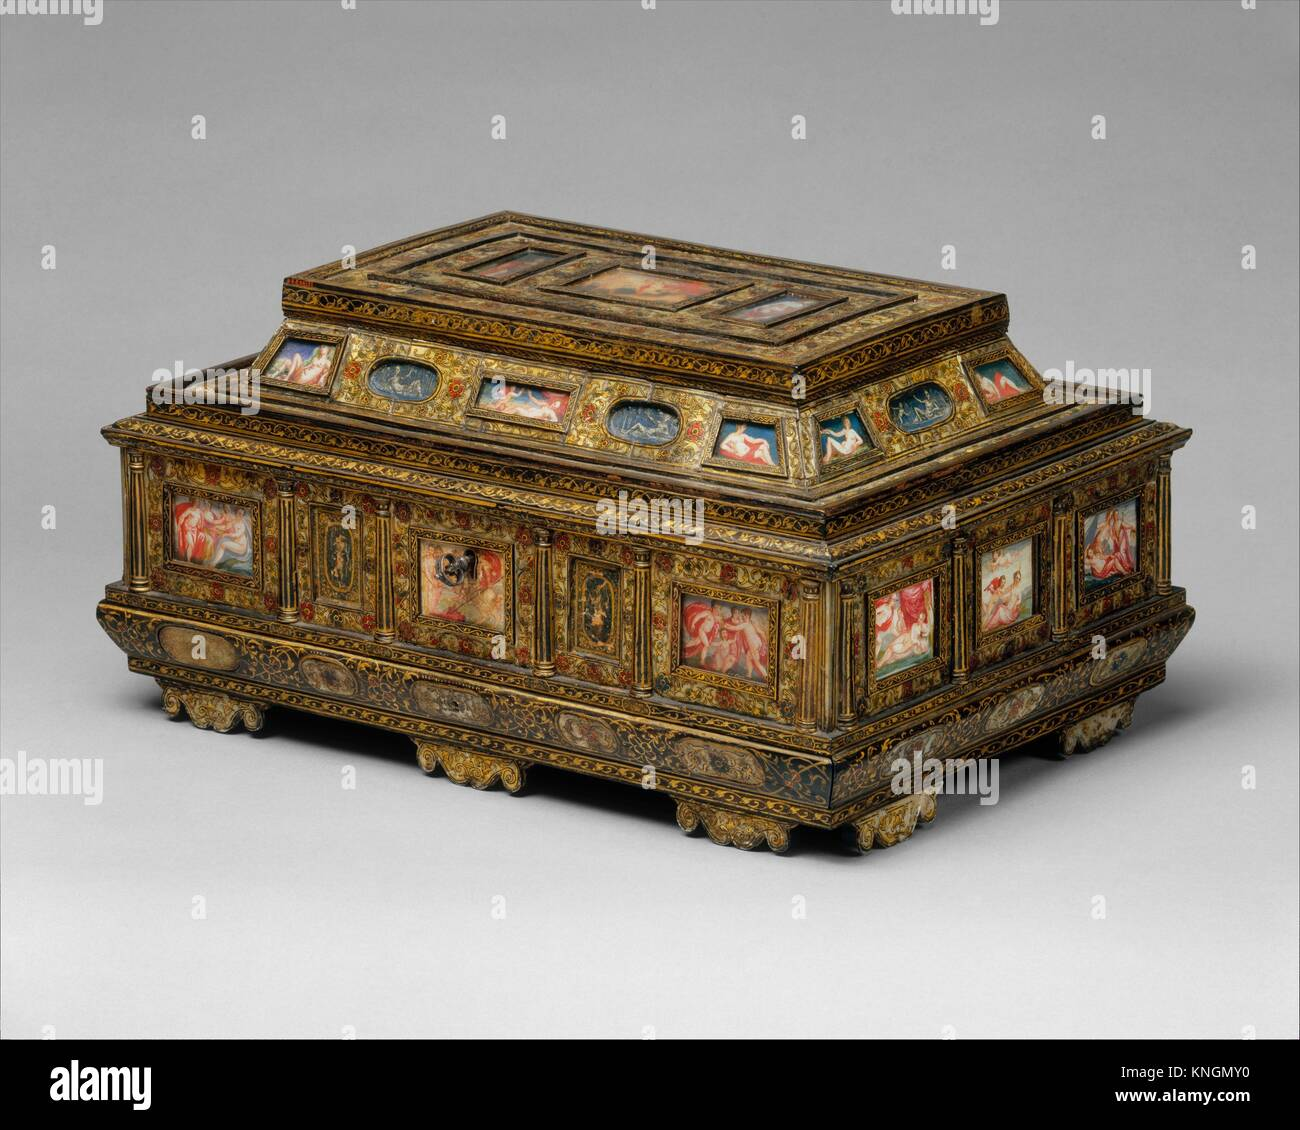 Casket (cofanetto or scrigno). Date: 1575-1600; Culture: Italian, Venice; Medium: Beechwood, ebony, painted and - Stock Image